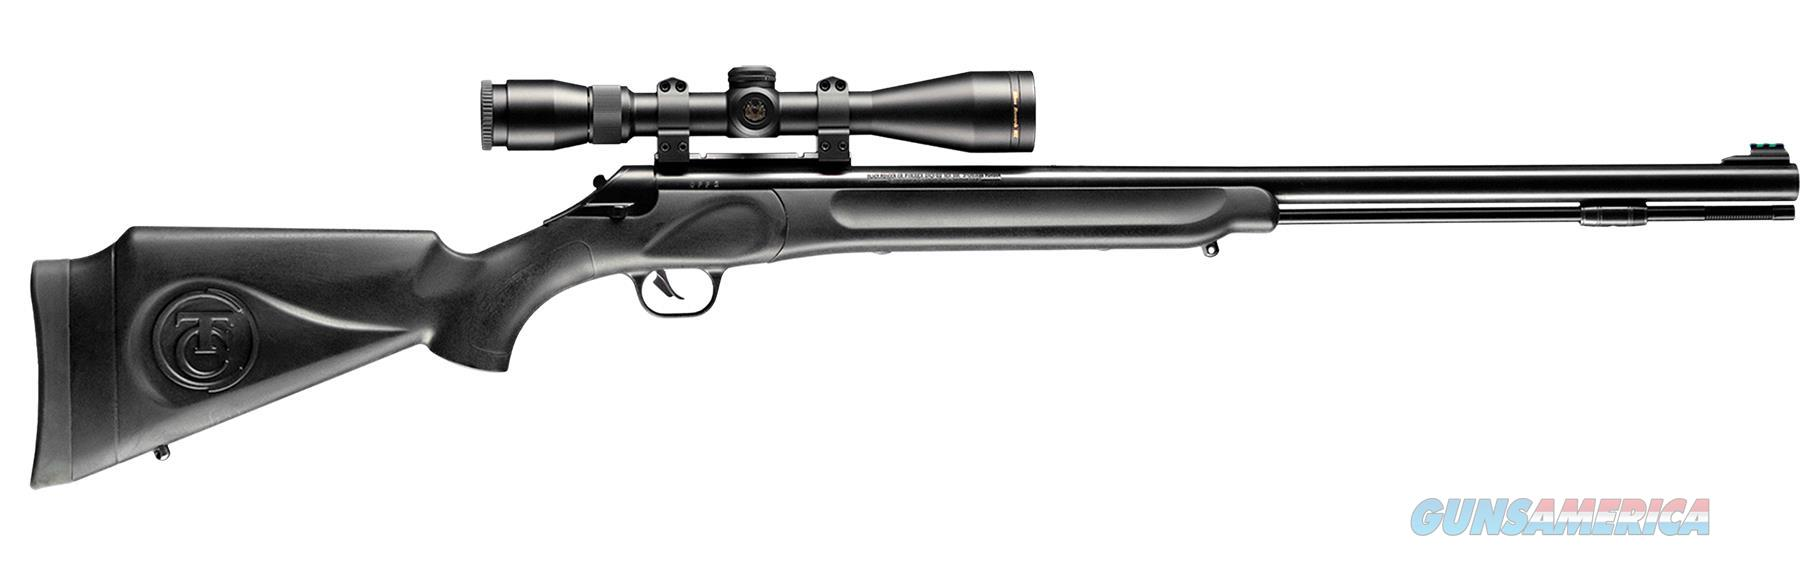 THOMPSON CENTER RFL IMPACT 50 ML BL COMP 10186680  Guns > Rifles > Thompson Center Muzzleloaders > Inline Style